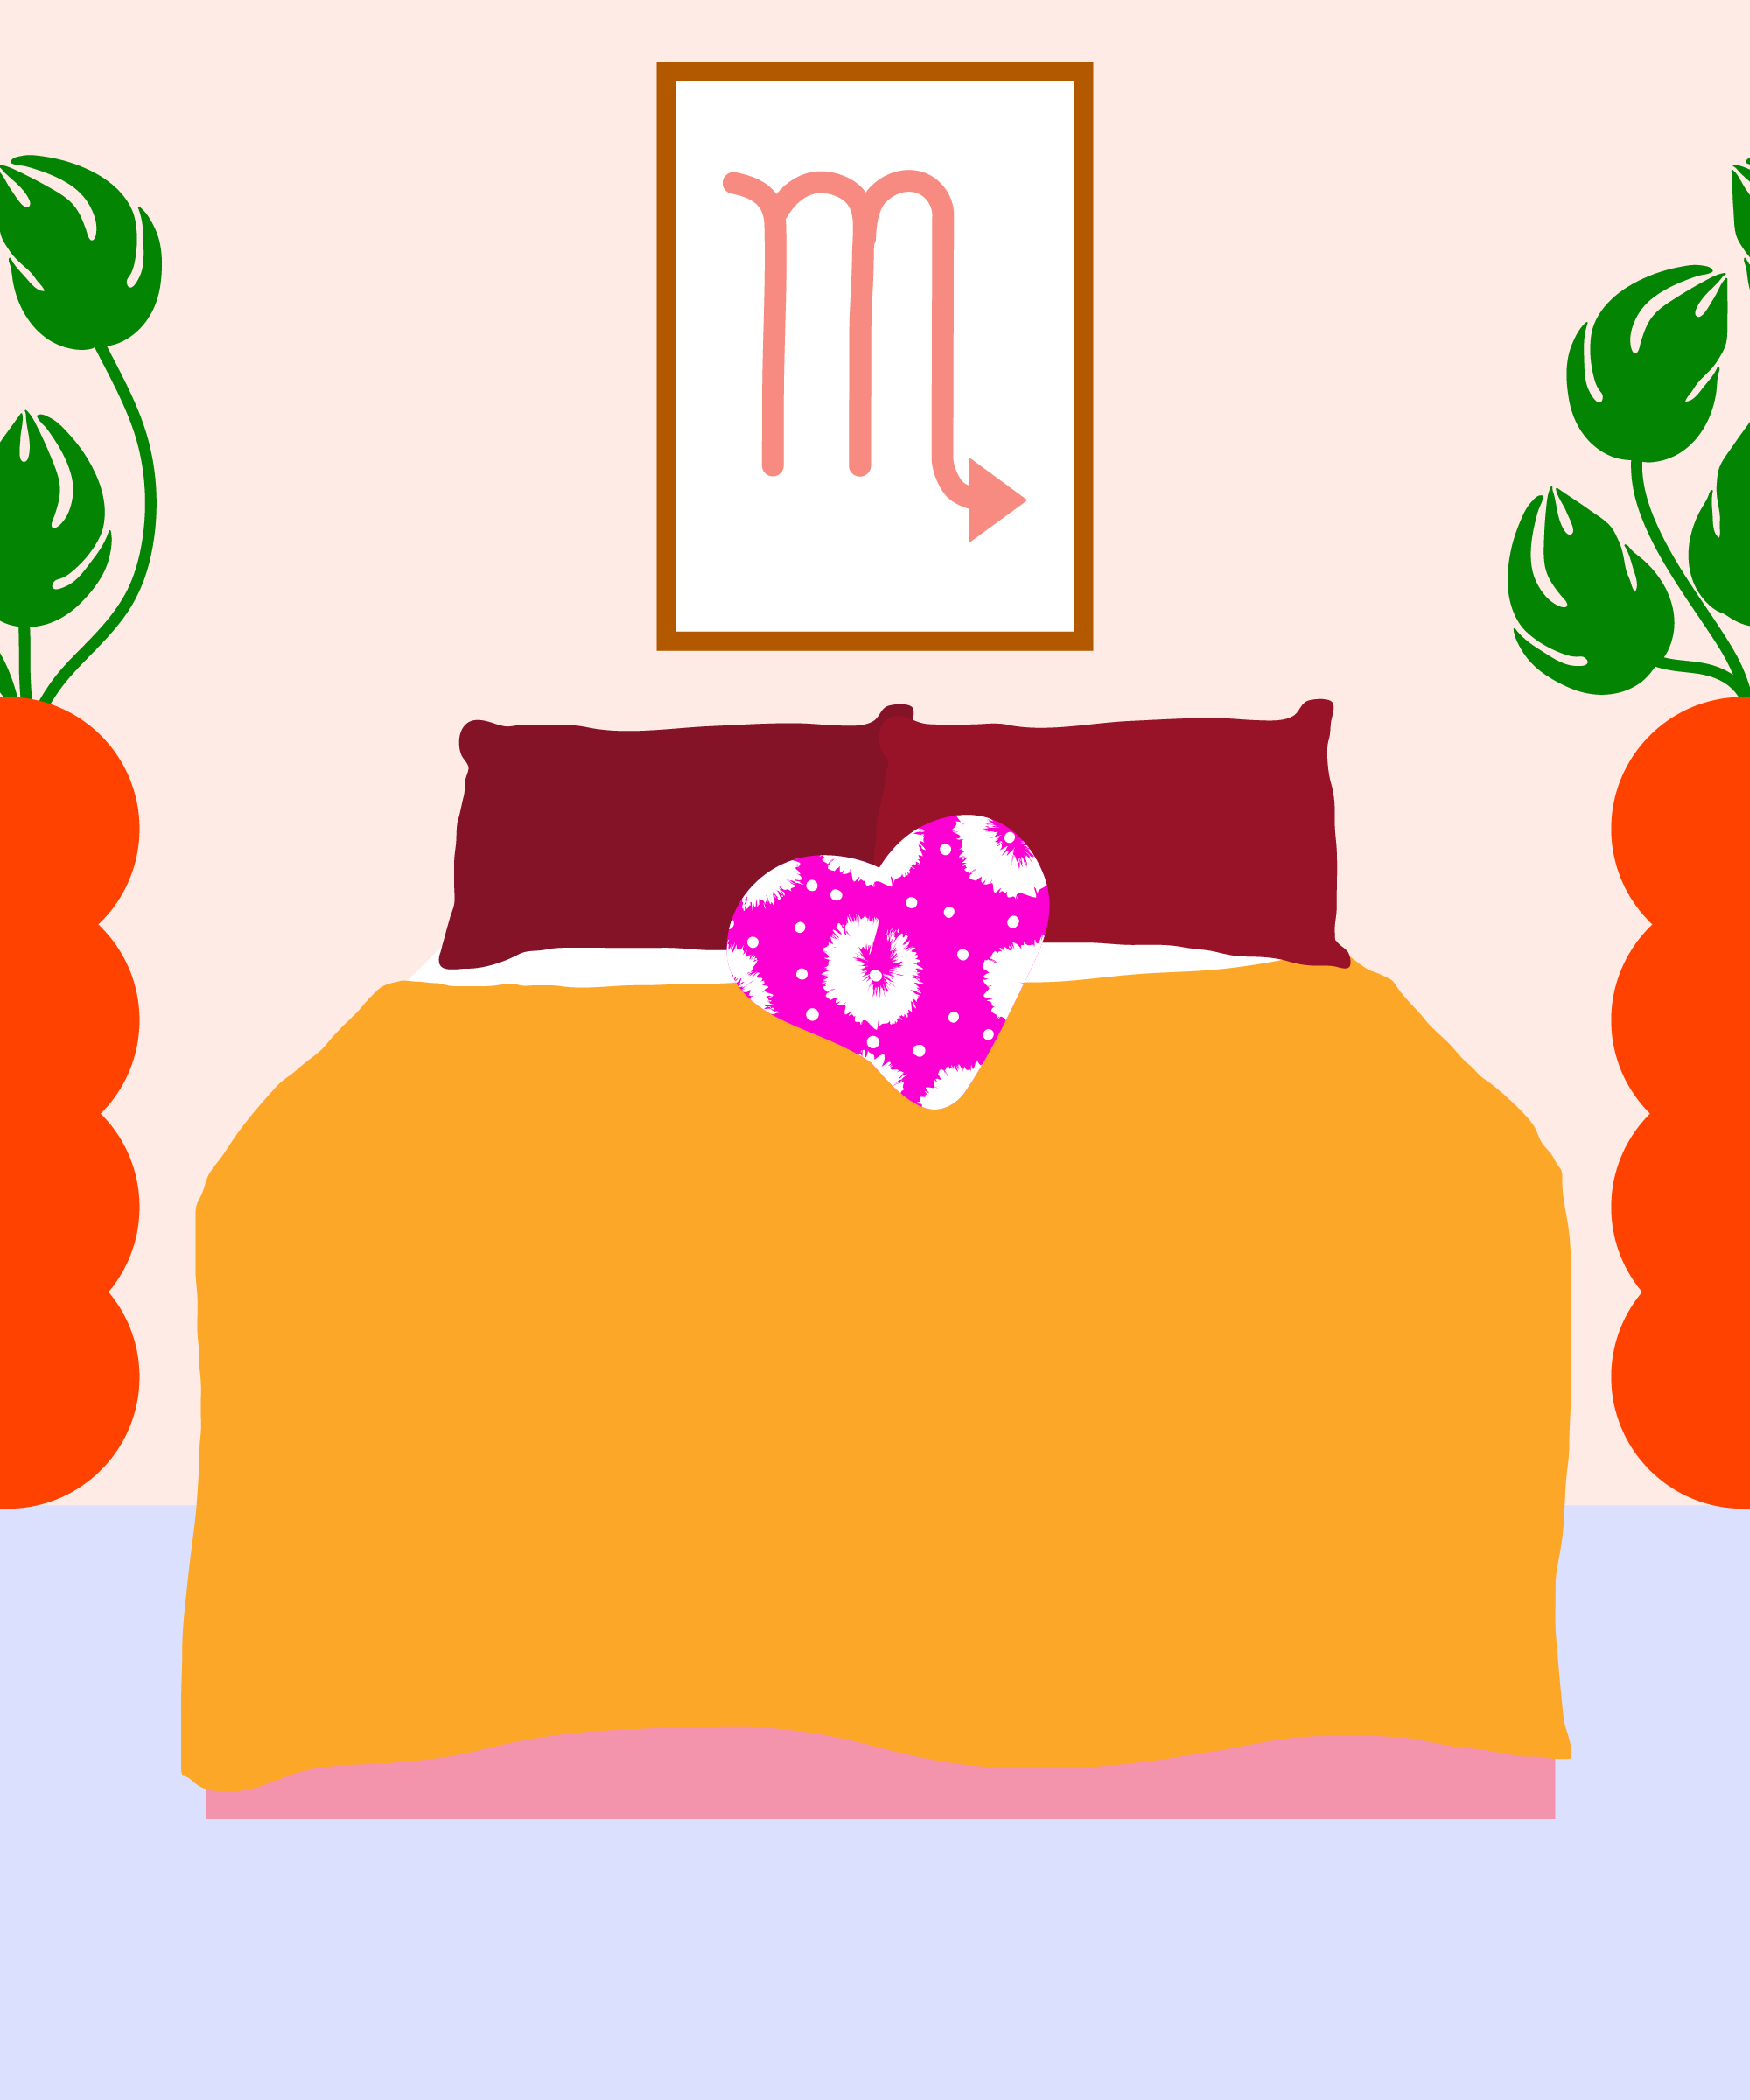 Types Of Roommate Personalities And Problems By Zodiac